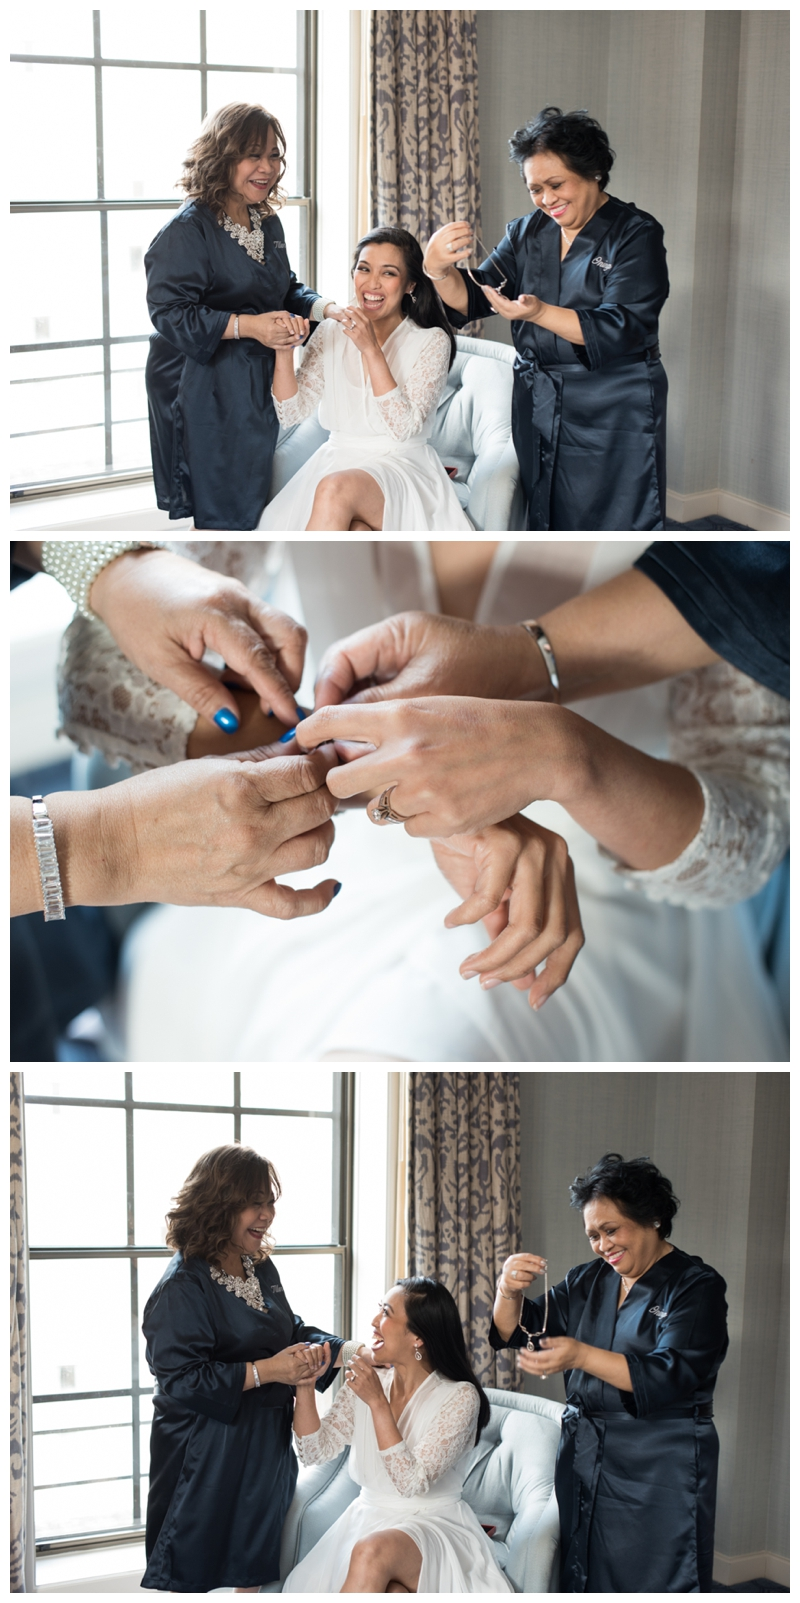 Wedding in Washington DC at the St Regis Hotel by Rachael Foster Photography_0011.jpg